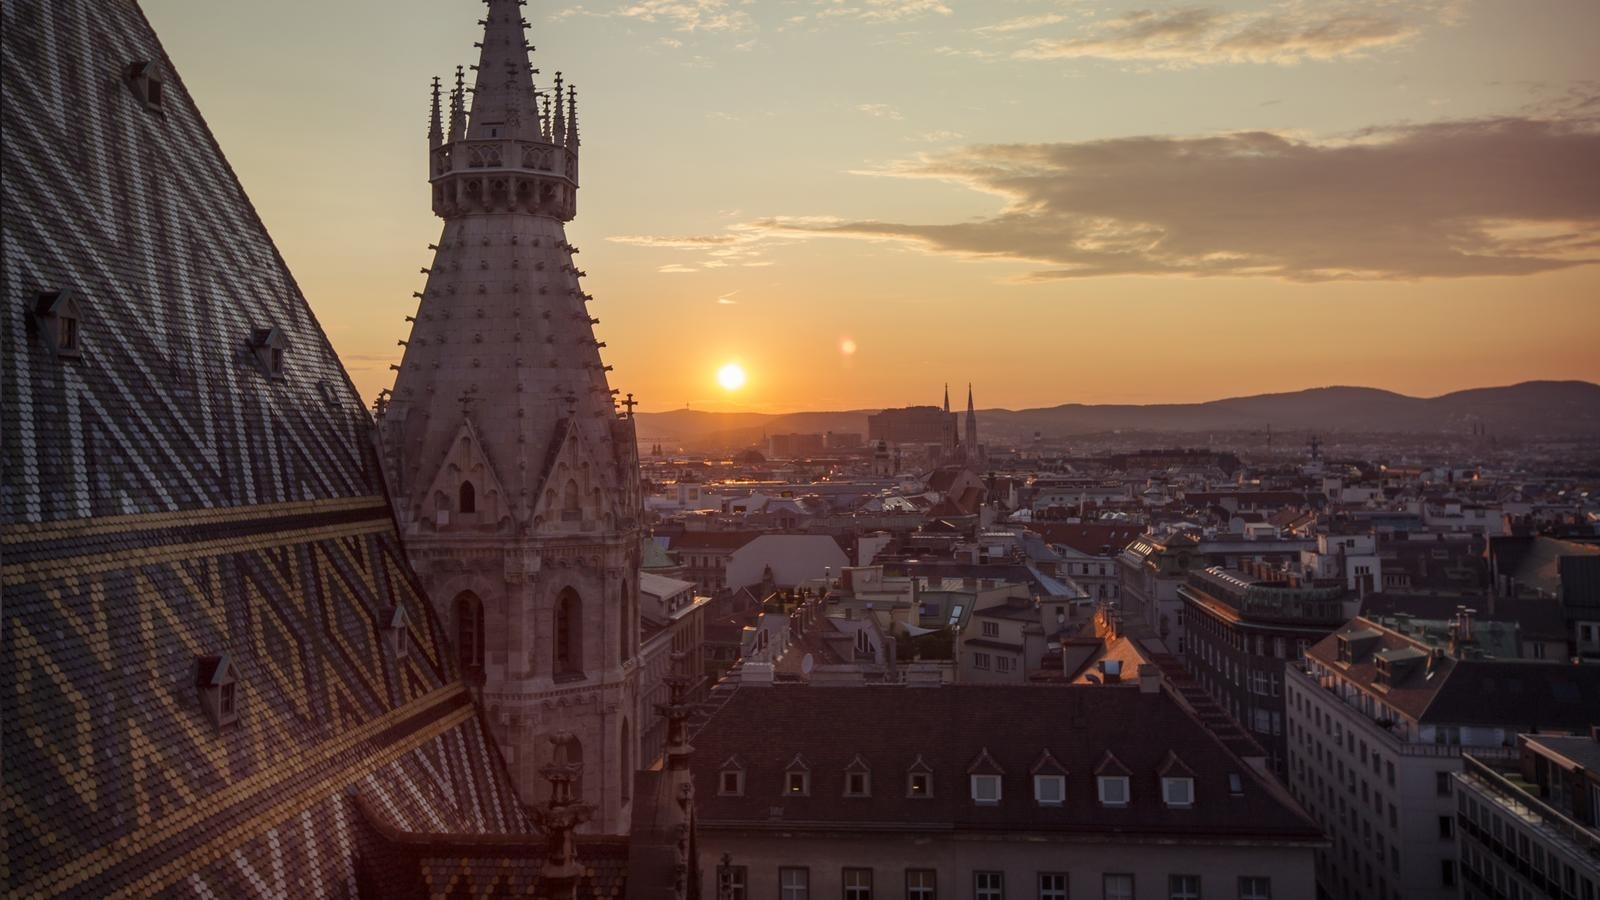 London To Budapest: Waterways, Wine & Bohemian Vibes with regard to Travel To Budapest From London